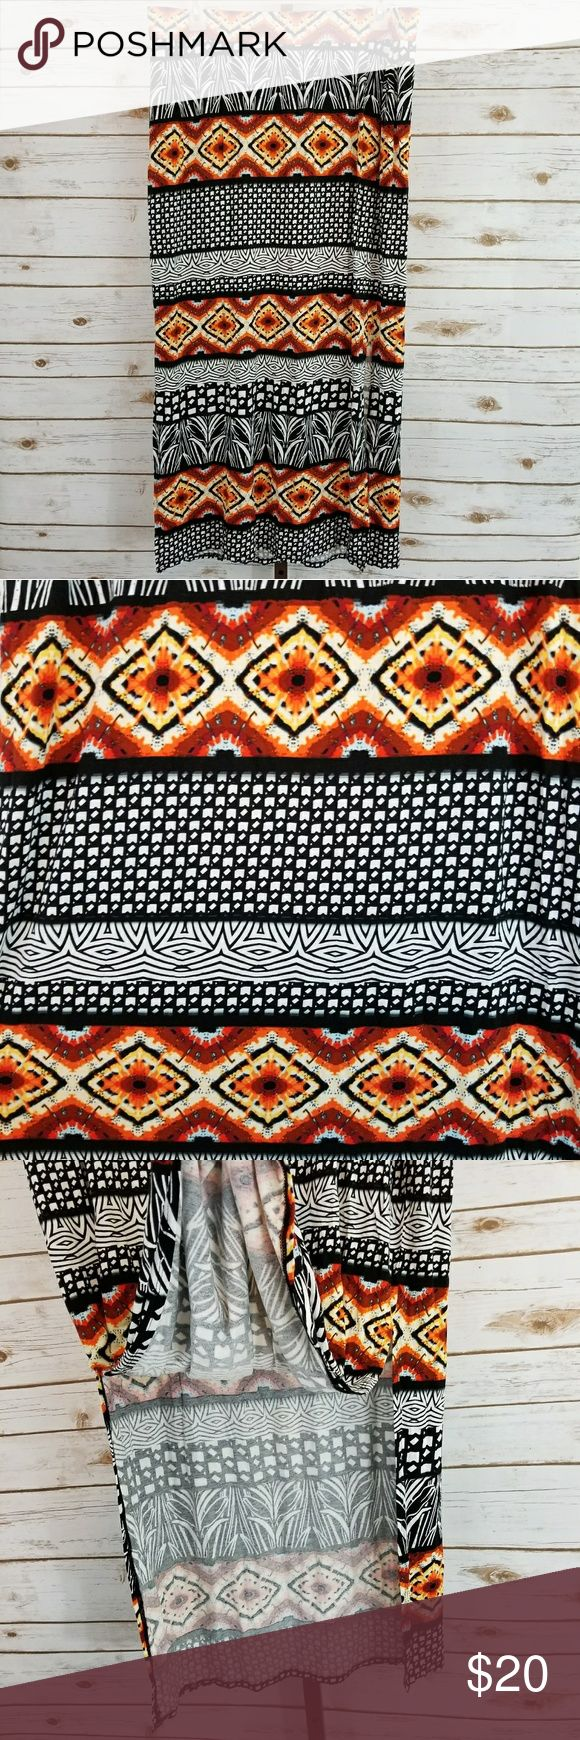 """Lane Bryant 18/20 Orange Black Tribal Maxi Skirt Beautiful tribal print maxi skirt from Lane Bryant! Very soft and stretchy rayon/spandex blend. 18"""" slit on each side adds saucy flair! Total skirt length is 40"""". Waist band is 19"""" across but stretches to 24"""" across. In excellent pre-owned condition! Lane Bryant Skirts Maxi"""